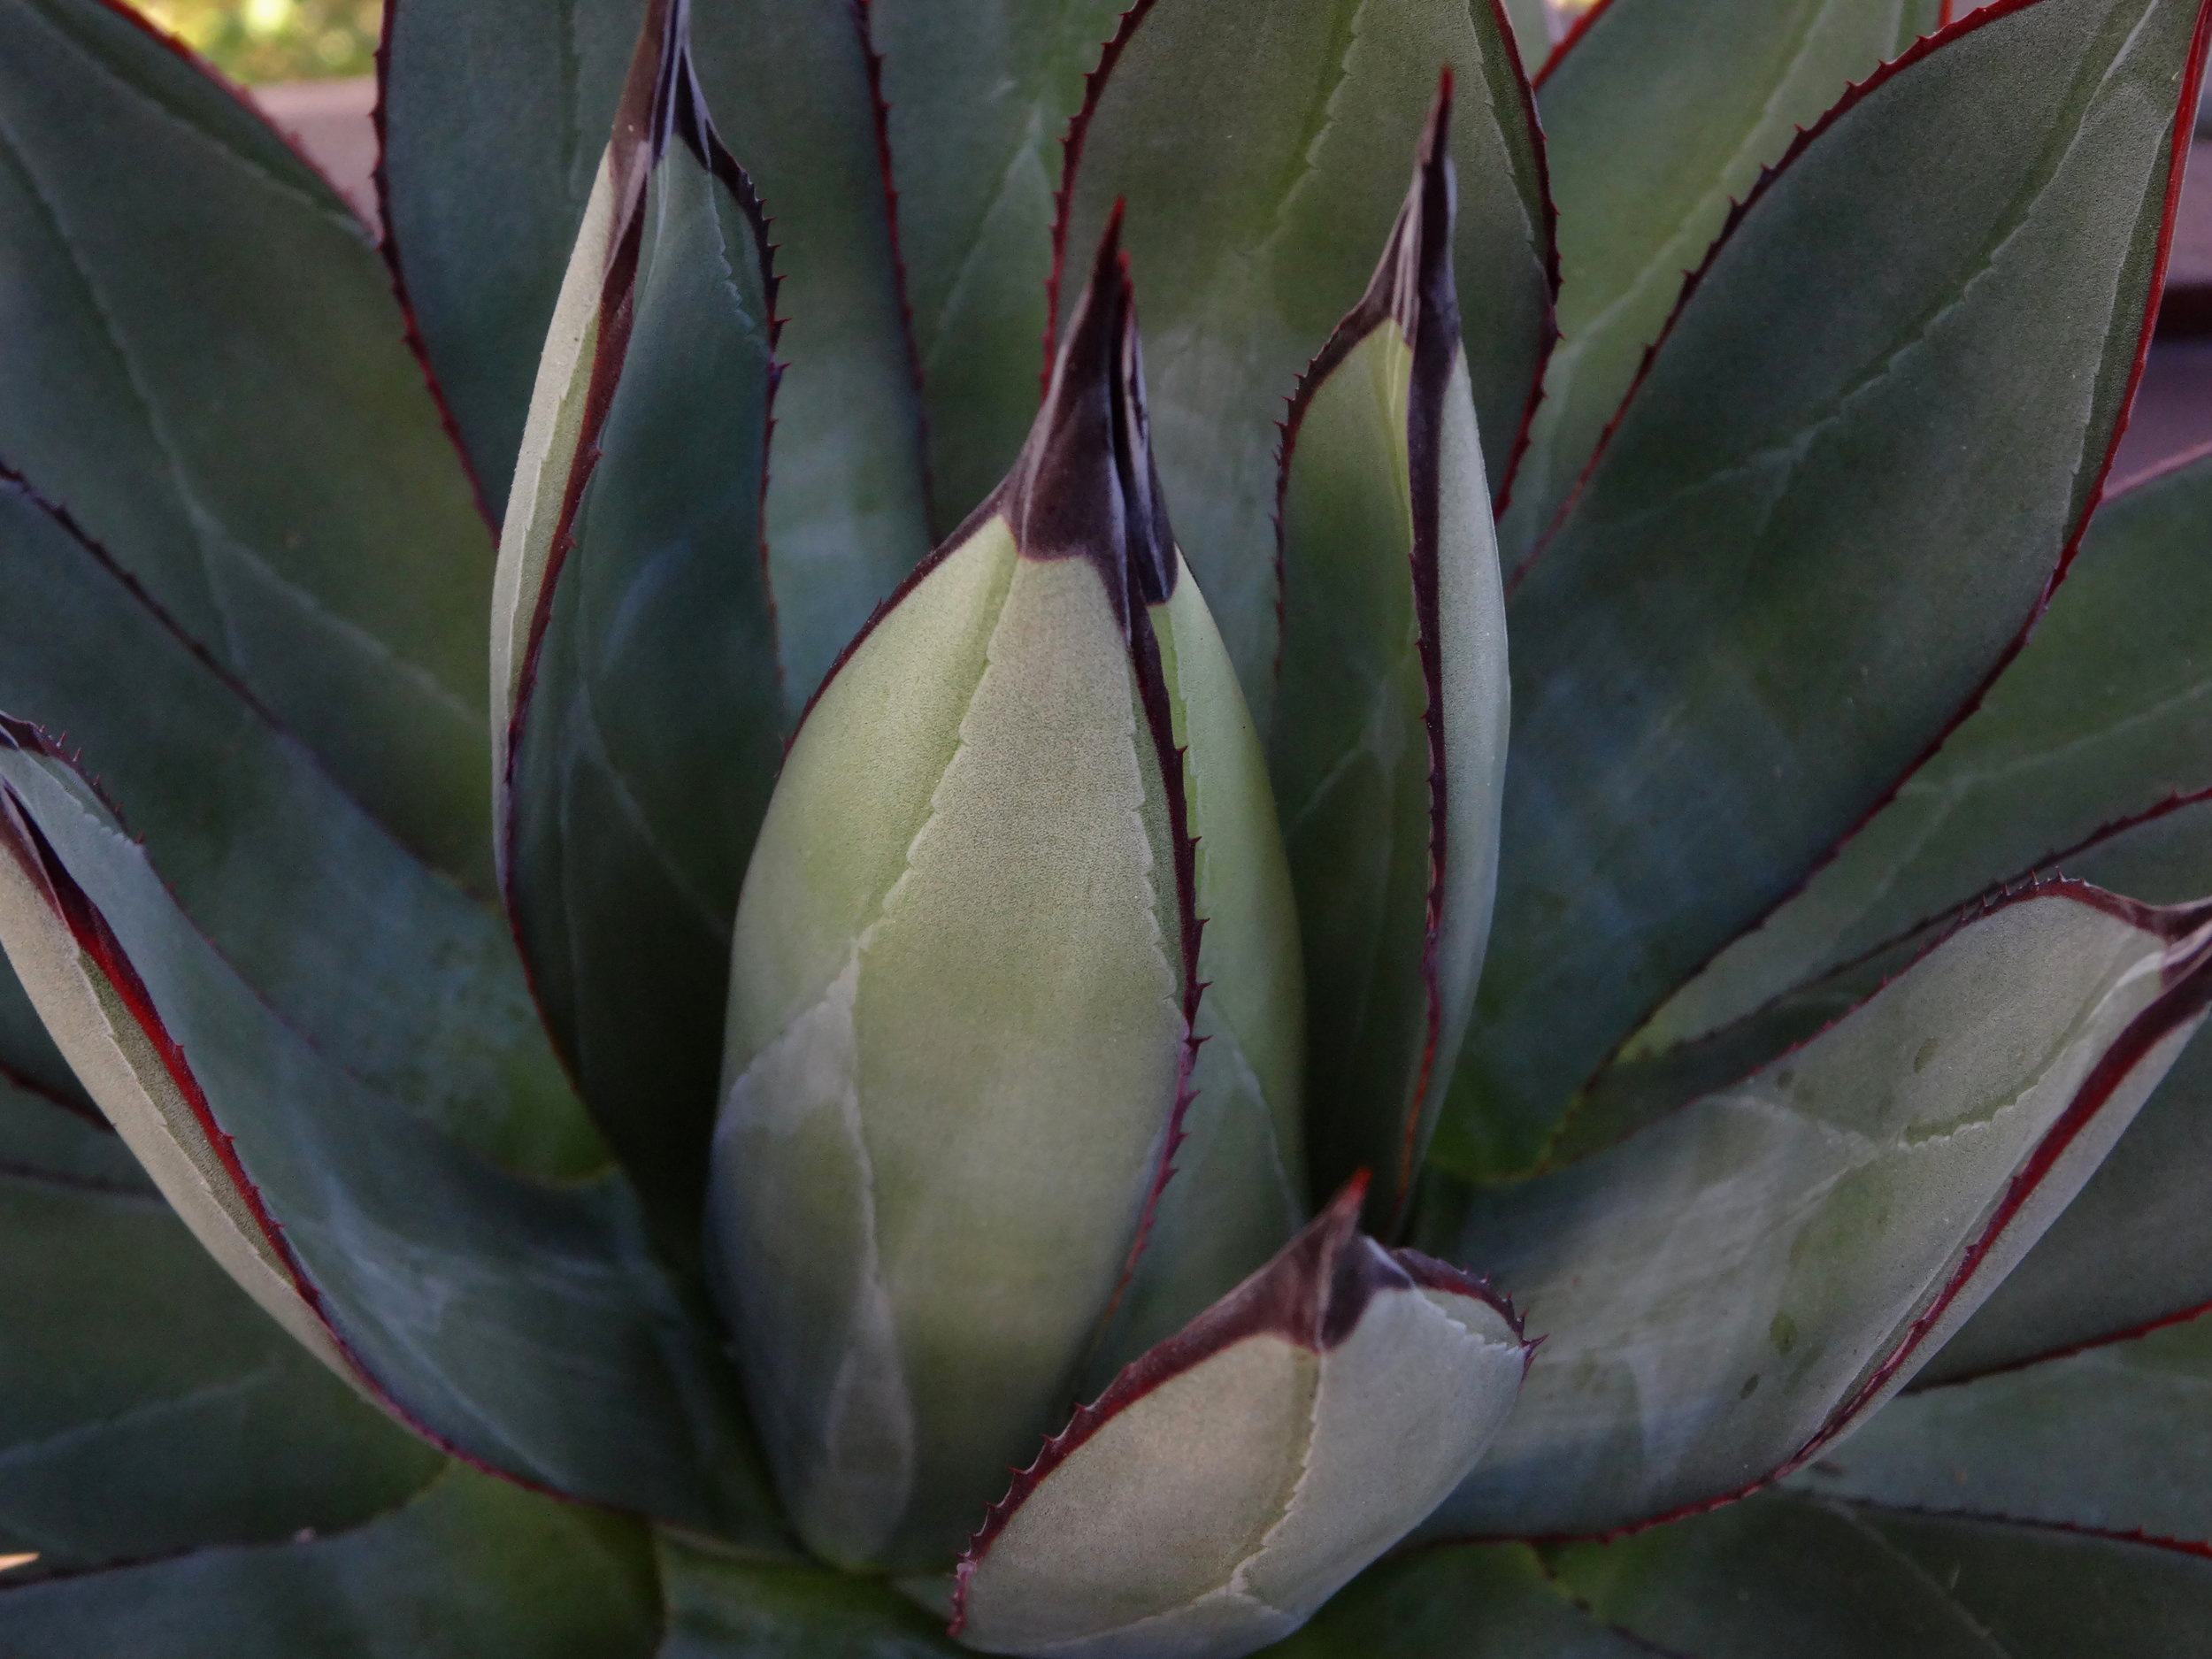 Agave  'Blue Ember' leaf detail, summer color. Note continuous marginal teeth to base of terminal spines. Author's collection.